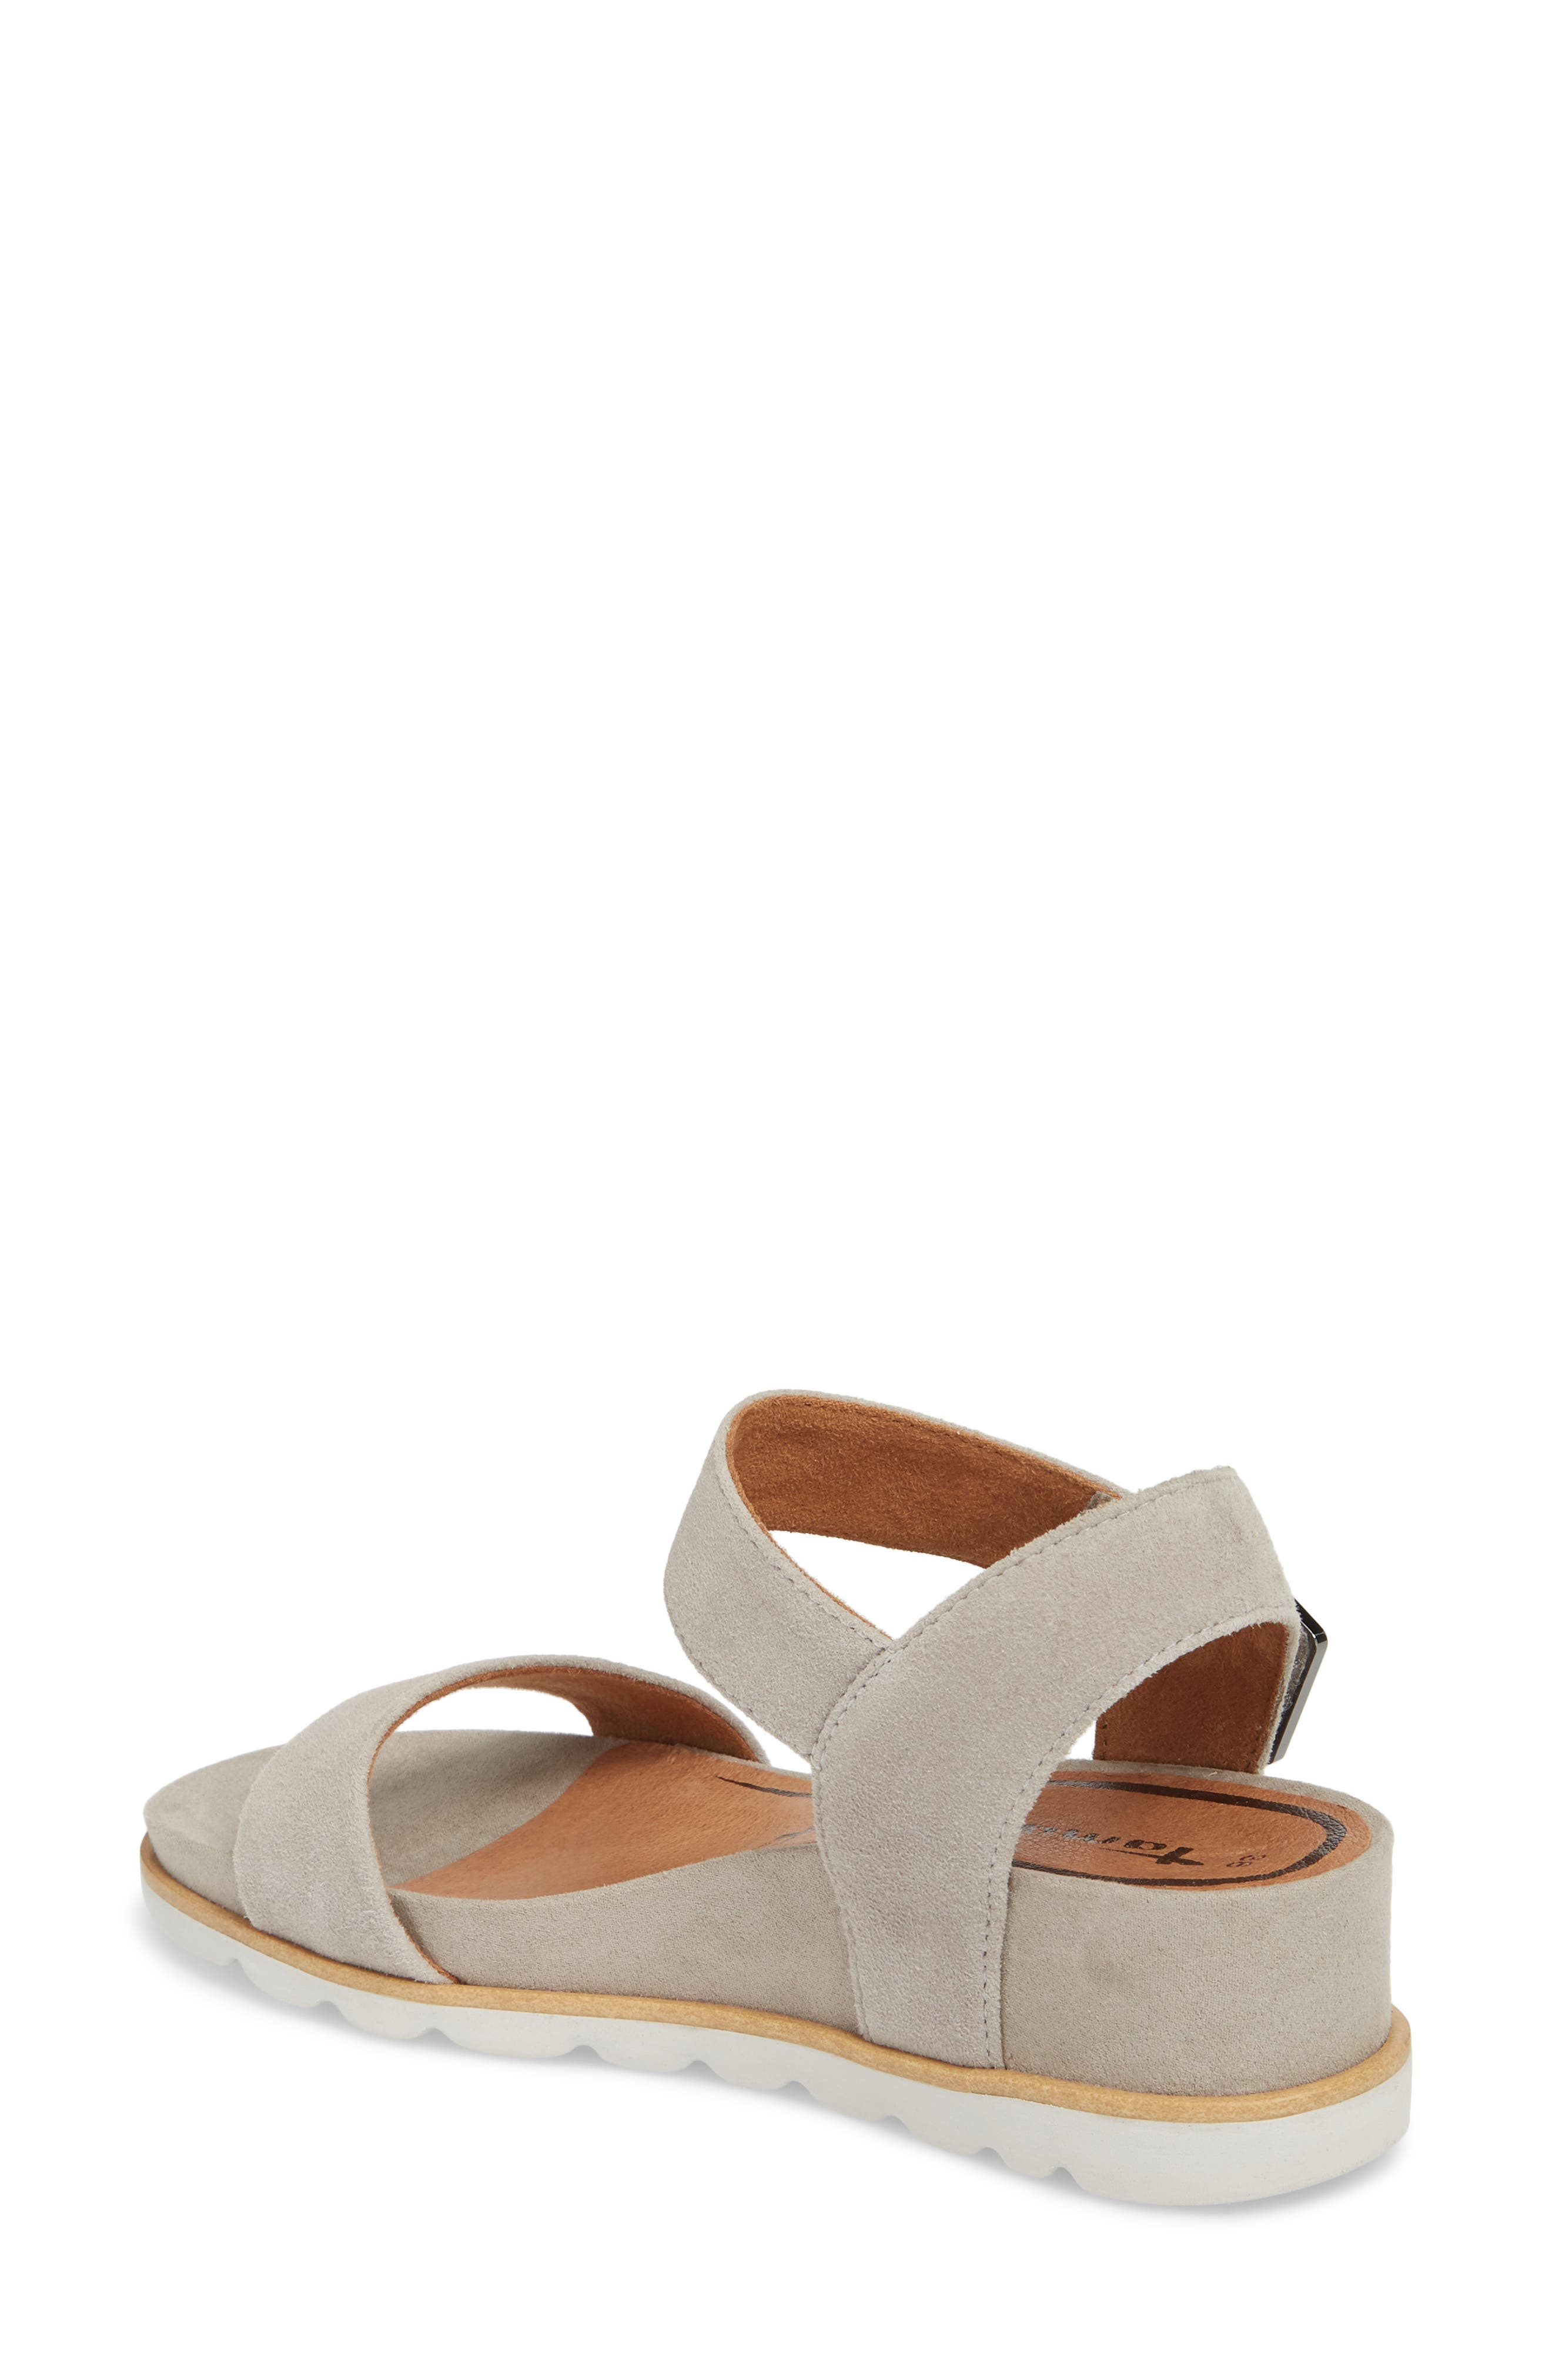 Cory Wedge Sandal,                             Alternate thumbnail 5, color,